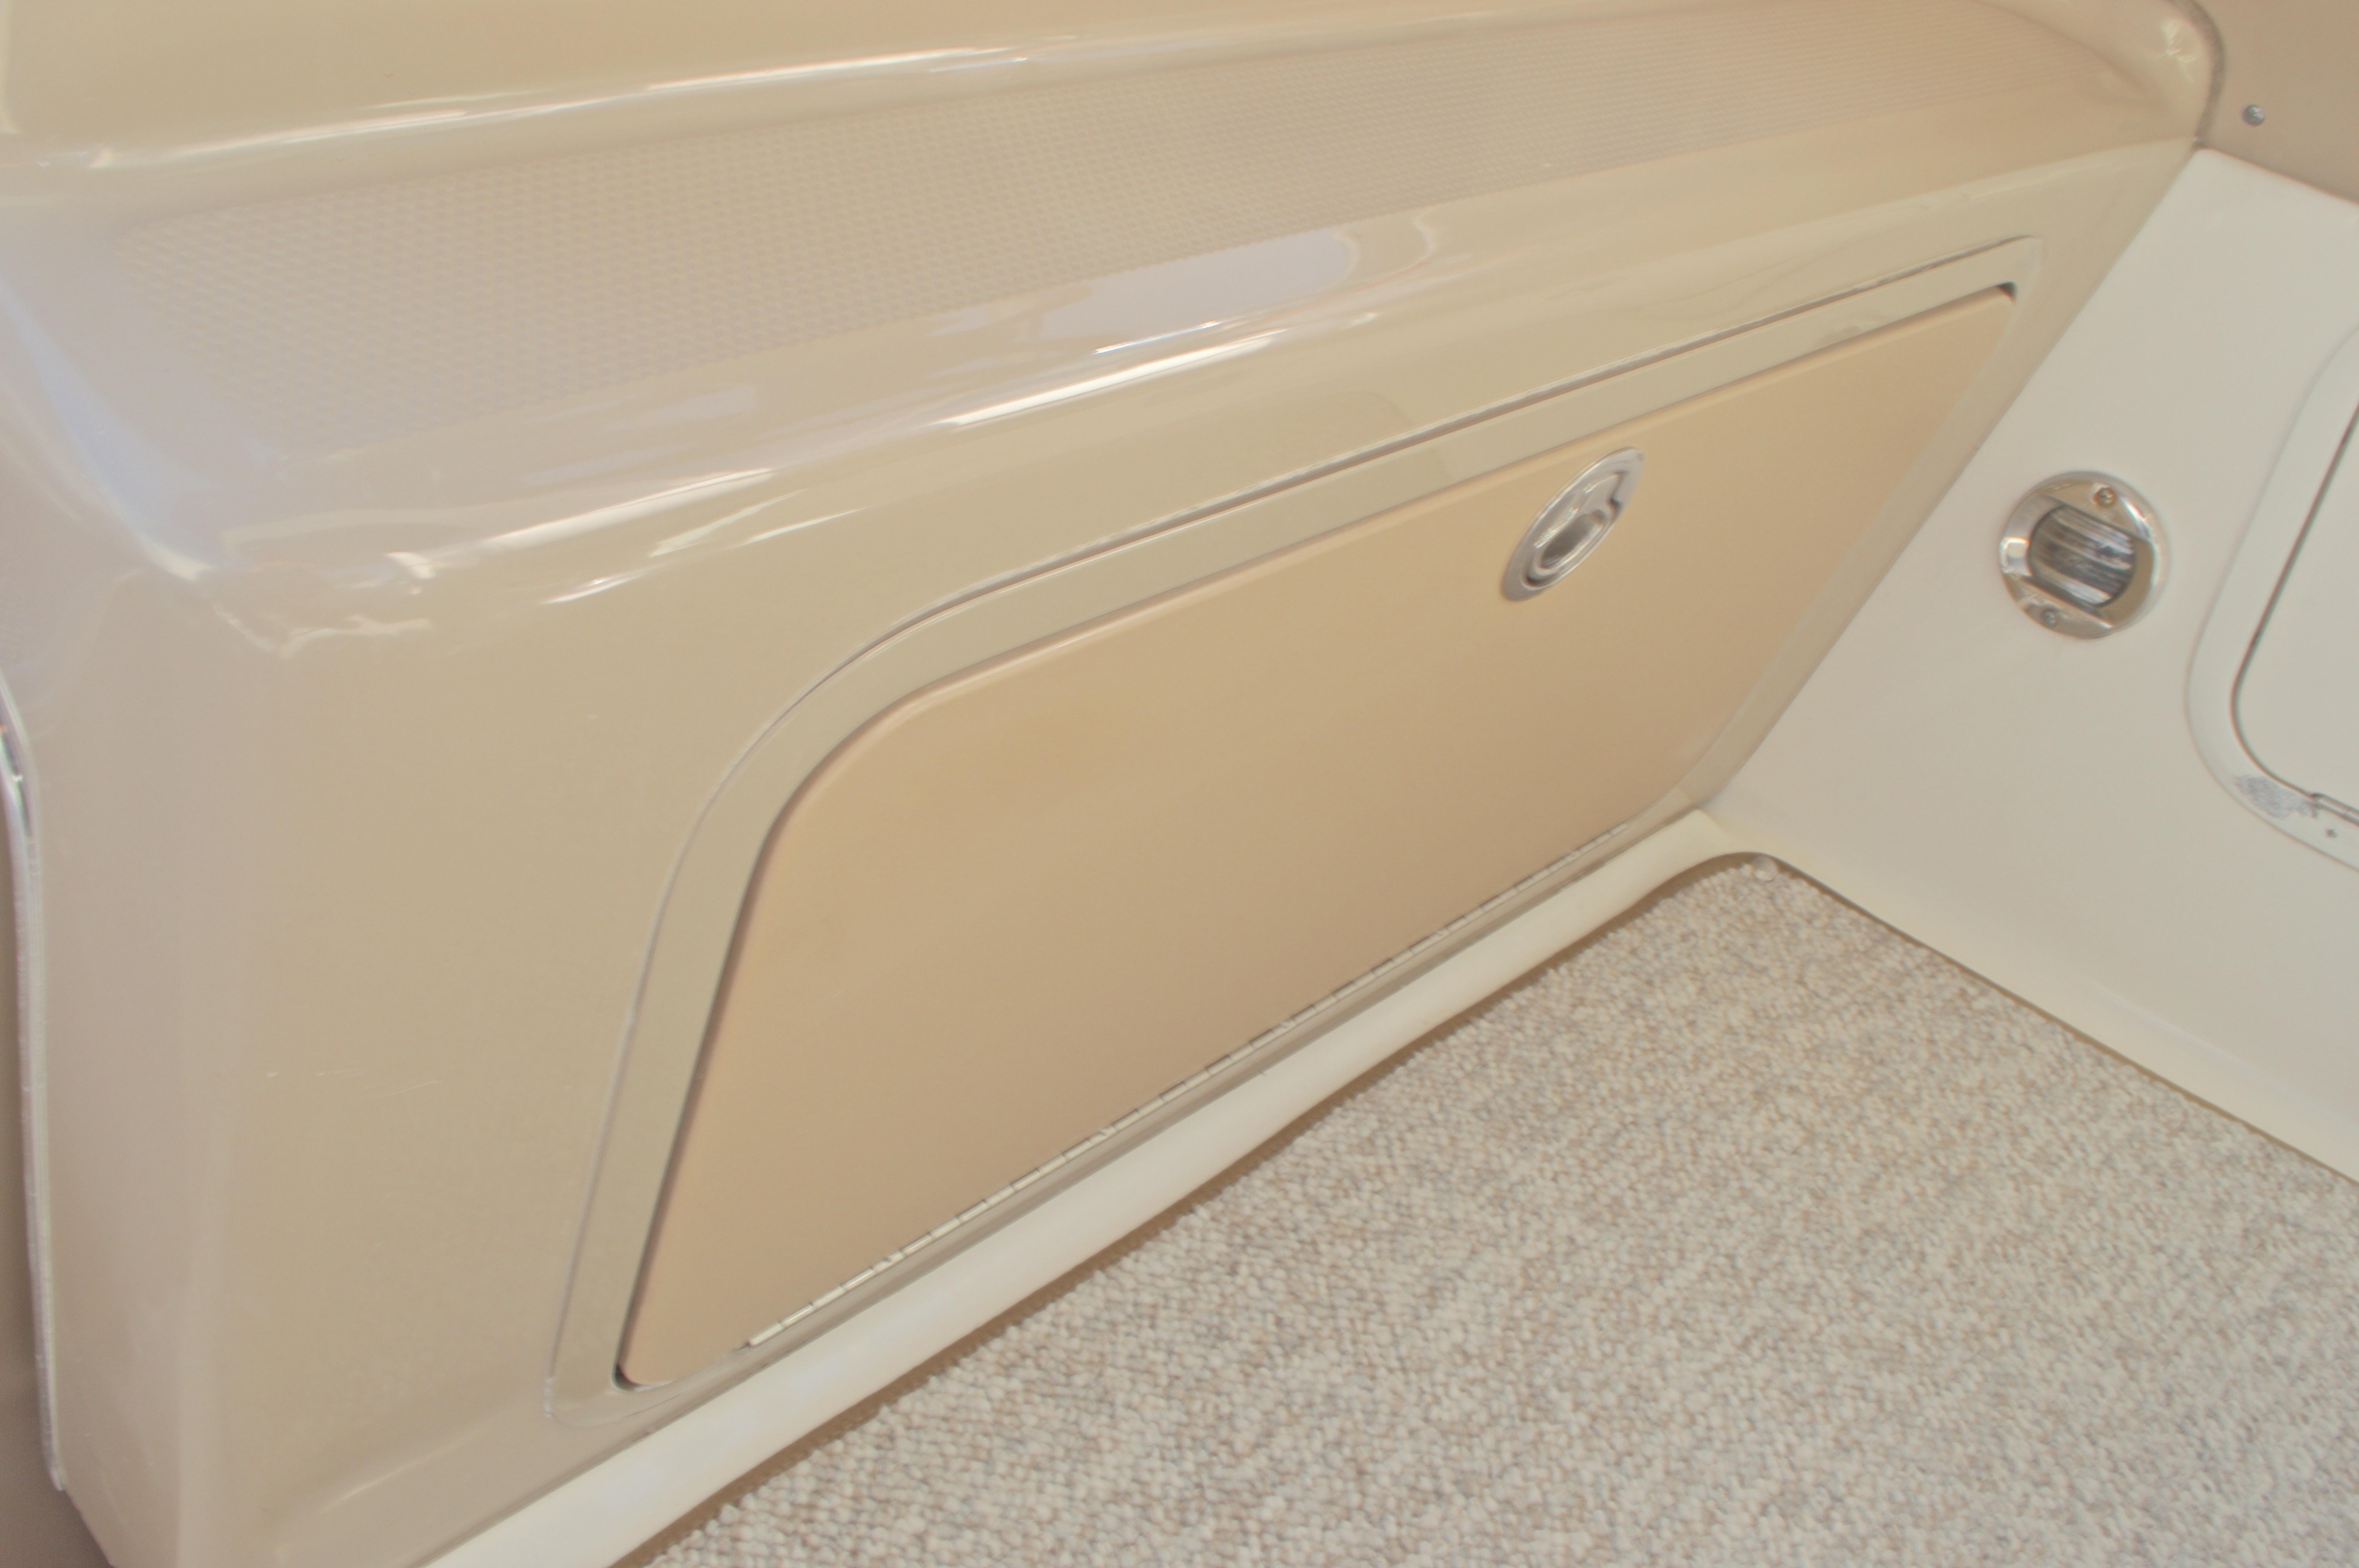 Thumbnail 43 for Used 2005 Sea Ray 280 Sundancer boat for sale in West Palm Beach, FL